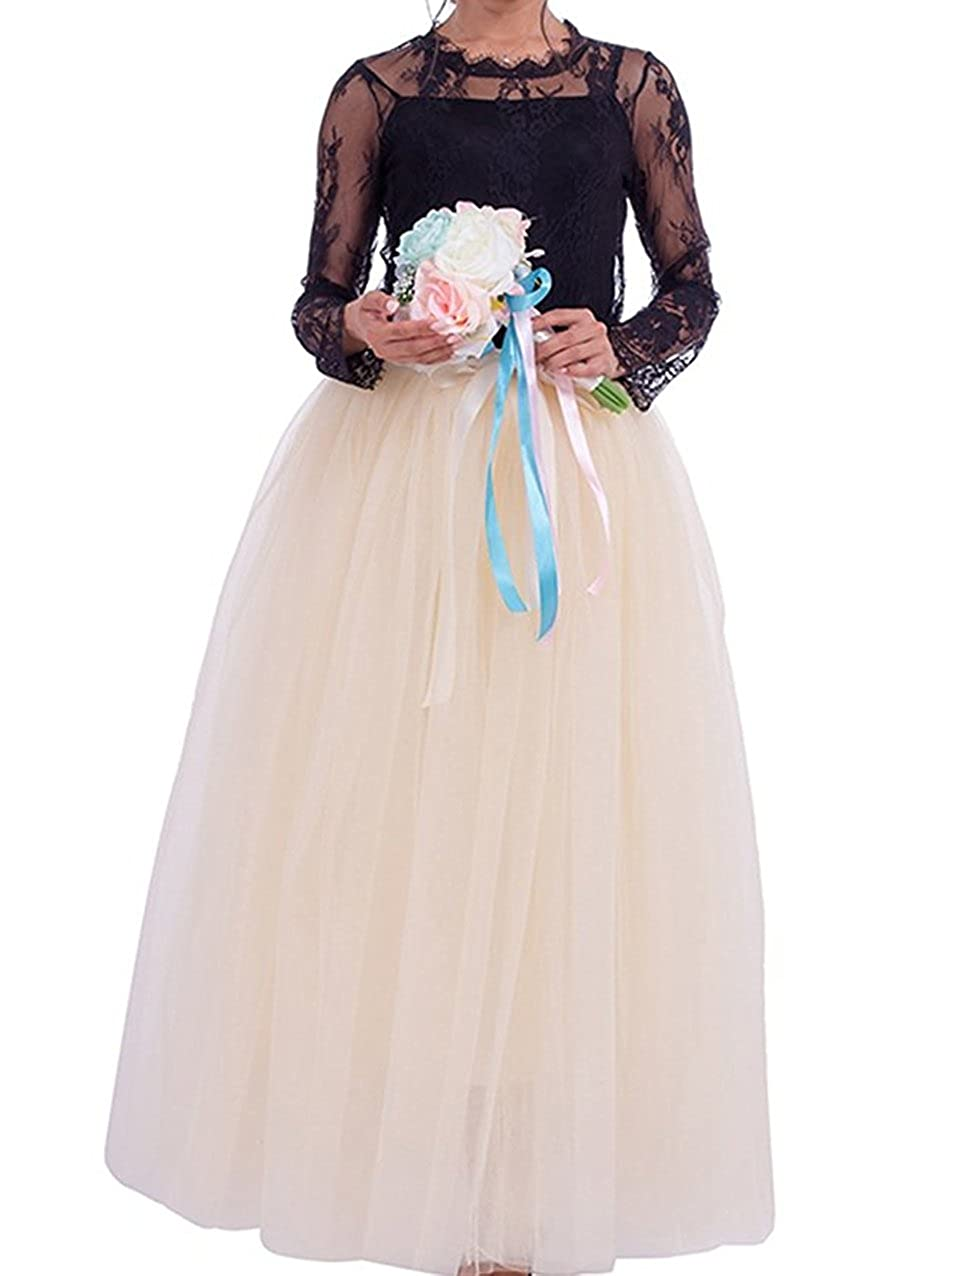 9d7bbb08fd Adjustable Waist: 65-110cm/25.5-43.3inches, the waist can stretch up to  110cm/43.3inches, The Skirt length is 100cm/39.37inches.